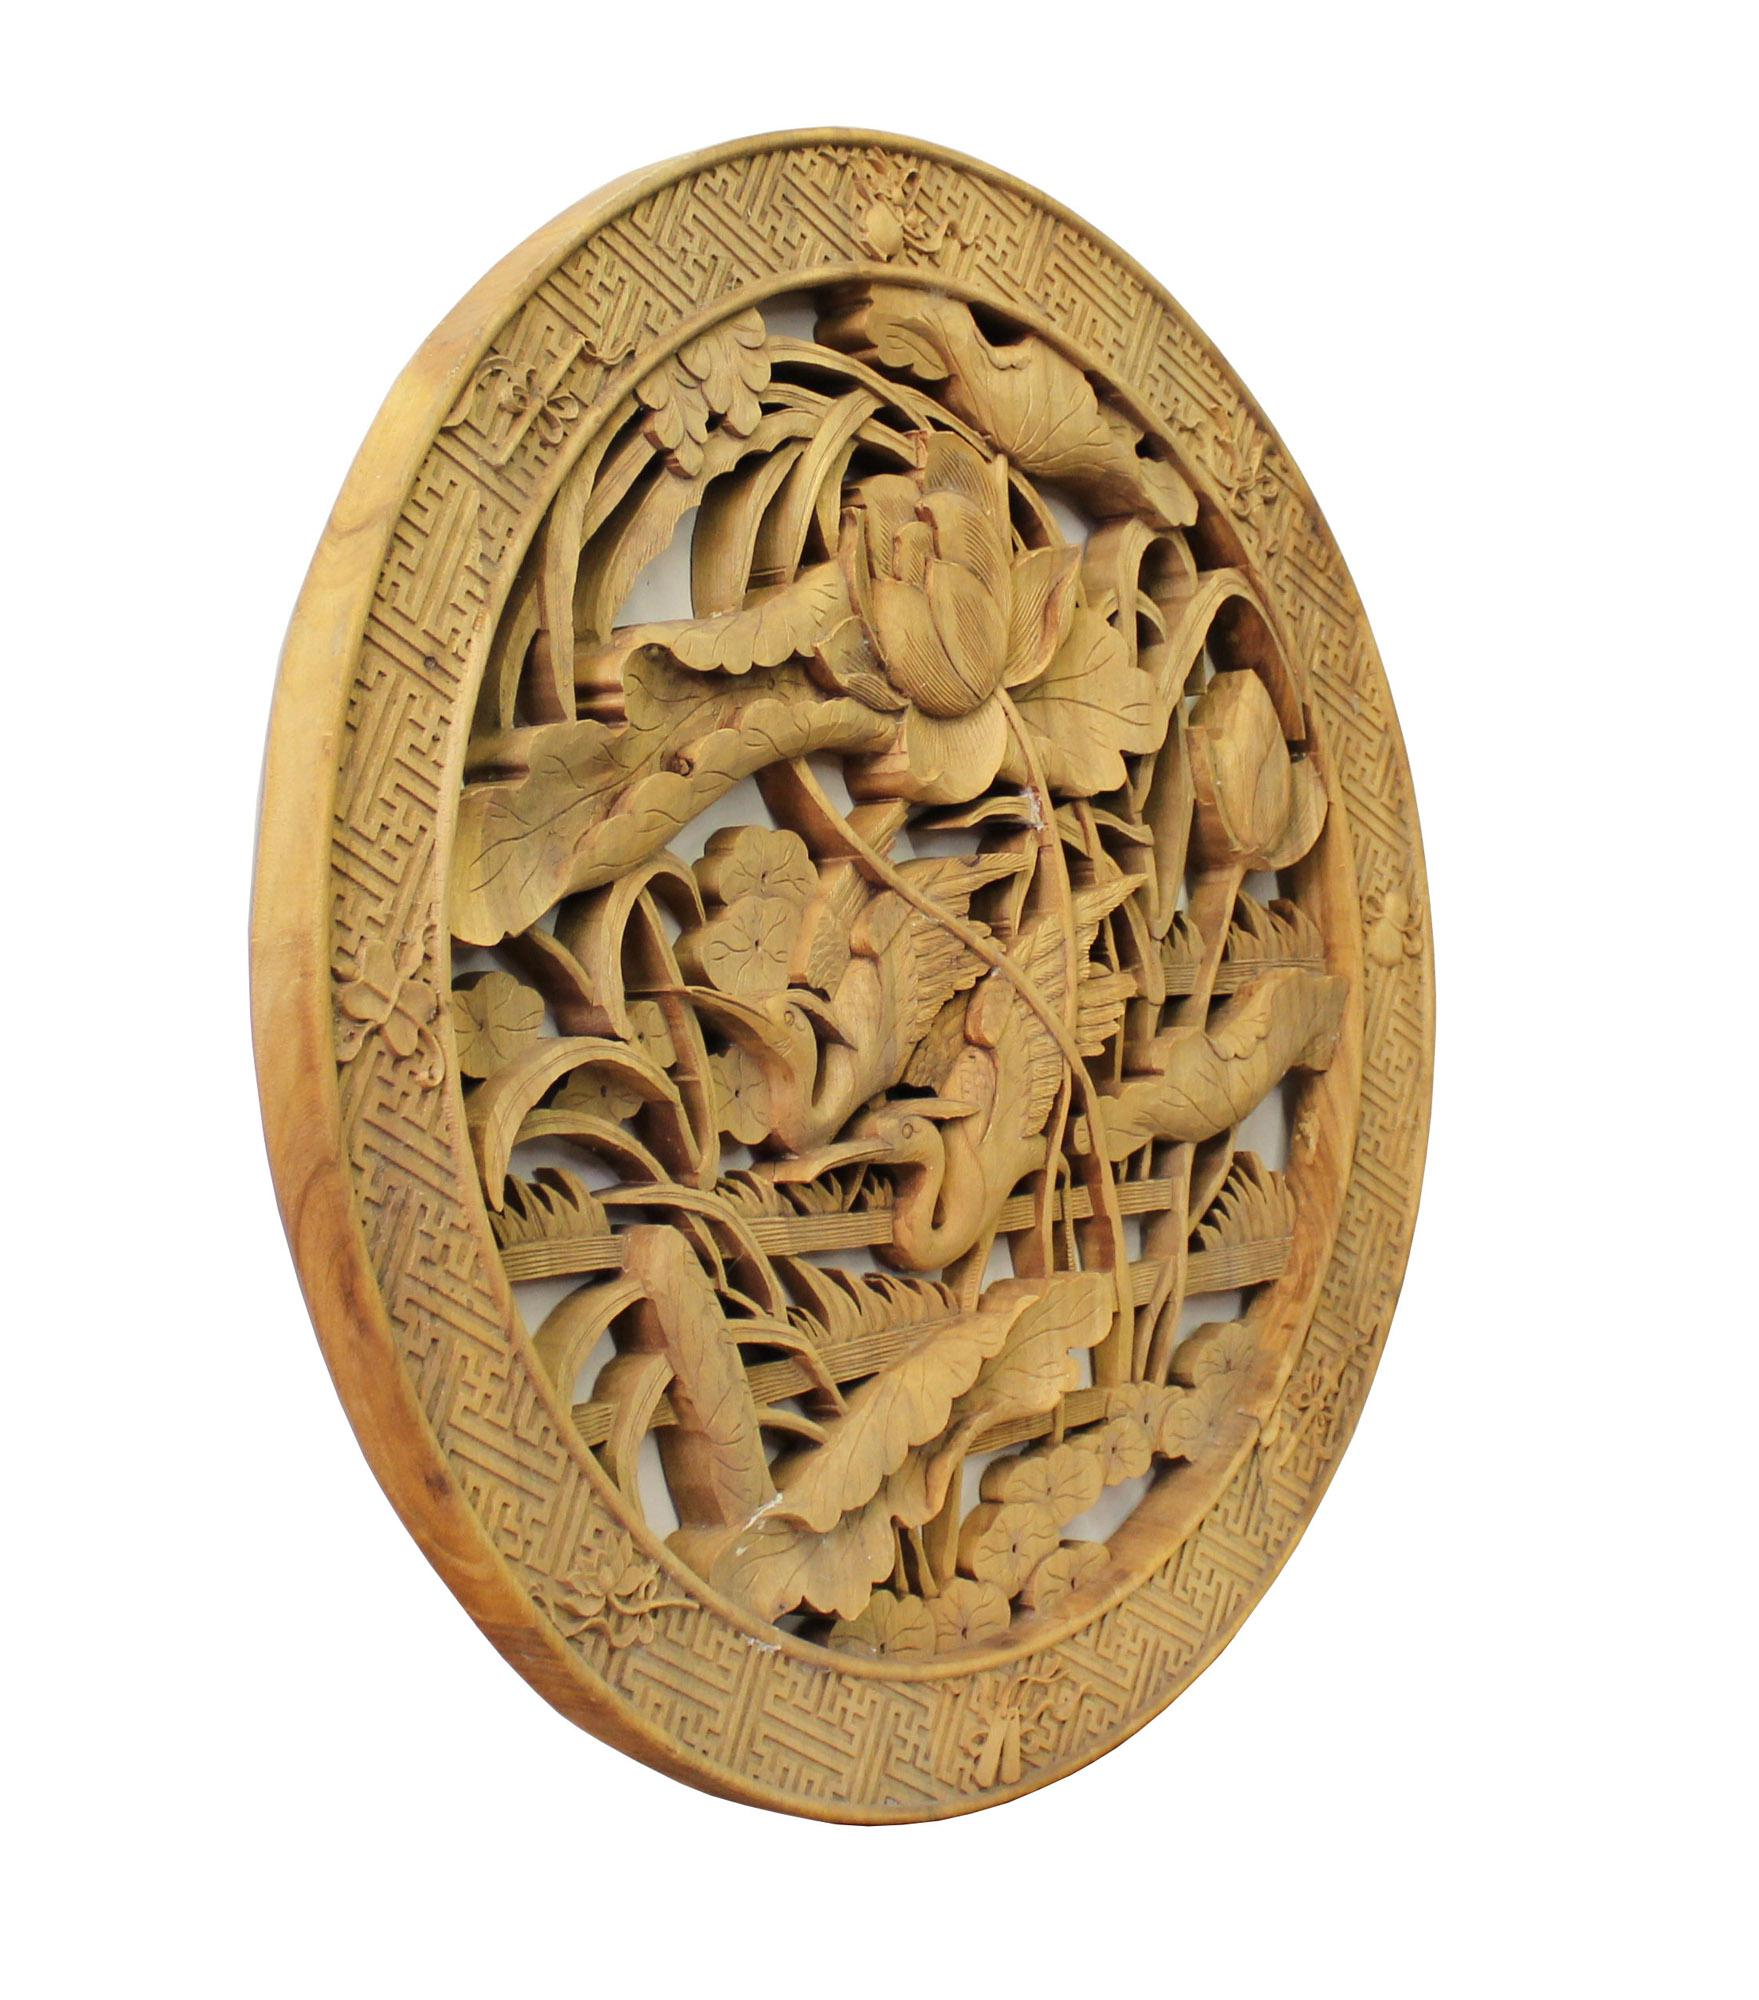 Chinese Round Flower Birds Wooden Wall Plaque Panel   Chairish This is a round wooden wall decor with Chinese flower and Birds theme  surrounded by a